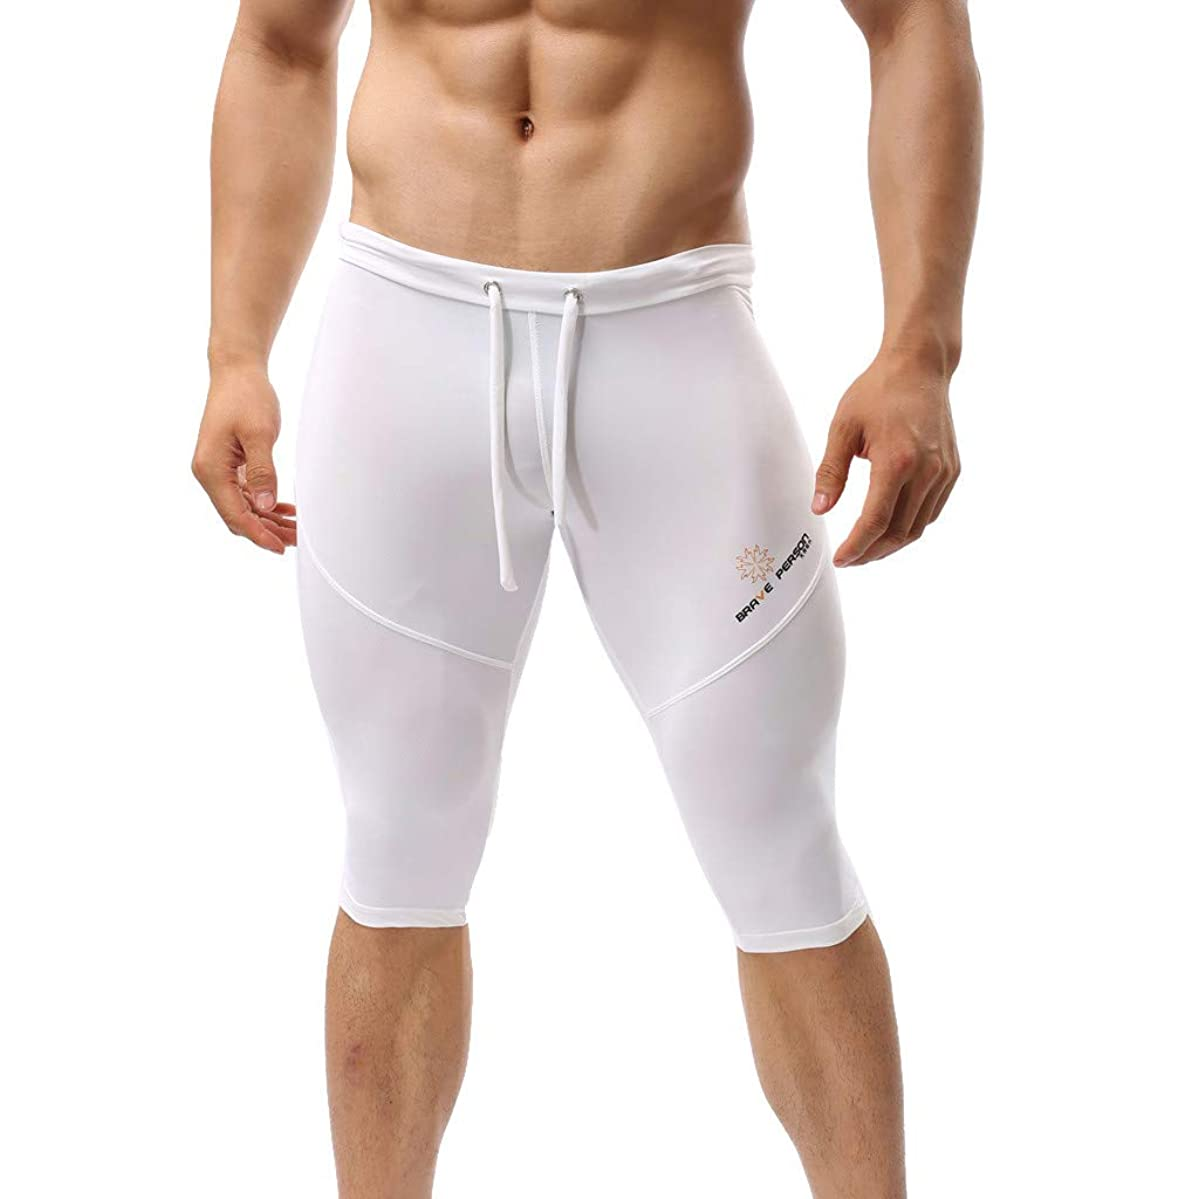 Homlifer Mens Swimming Trunks Summer Solid Color Sexy Long Sport Fitness Shorts Tight-Fitting Swim Shorts Men Ultrathin Swim Pants Water Sports Quick-Drying Beach Pants Swimming Surfing S-L